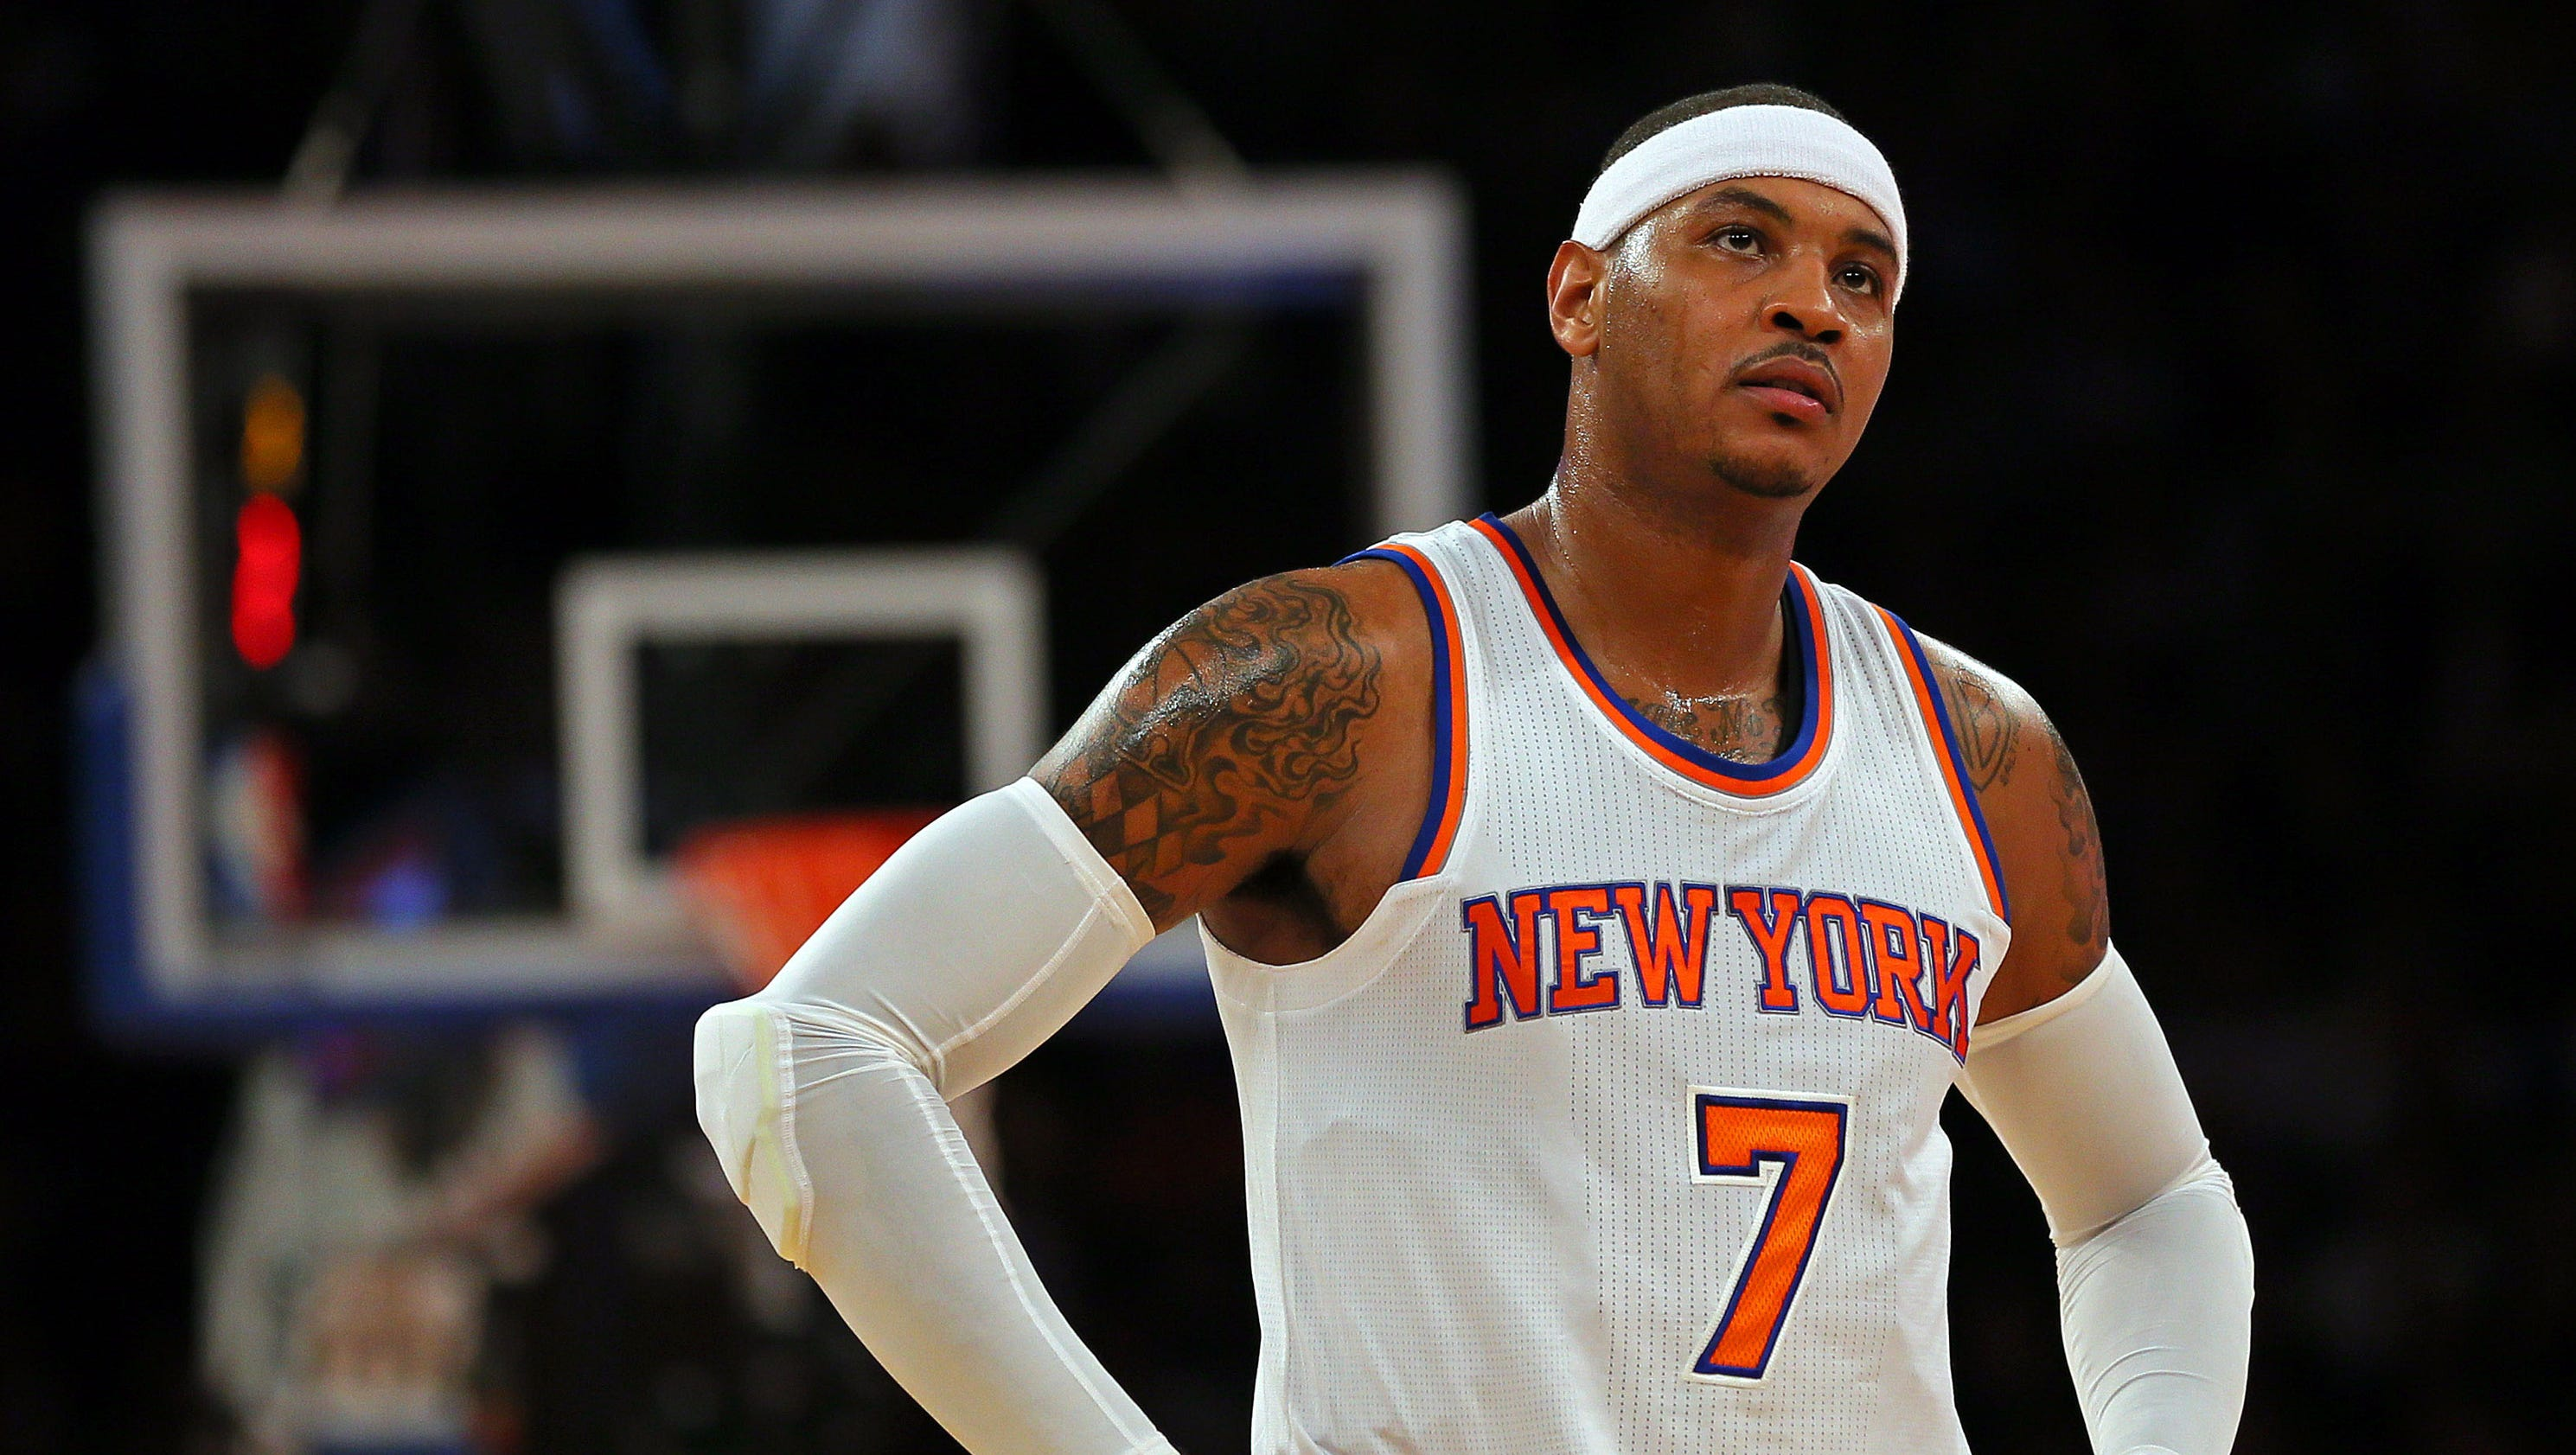 carmelo anthony - photo #45